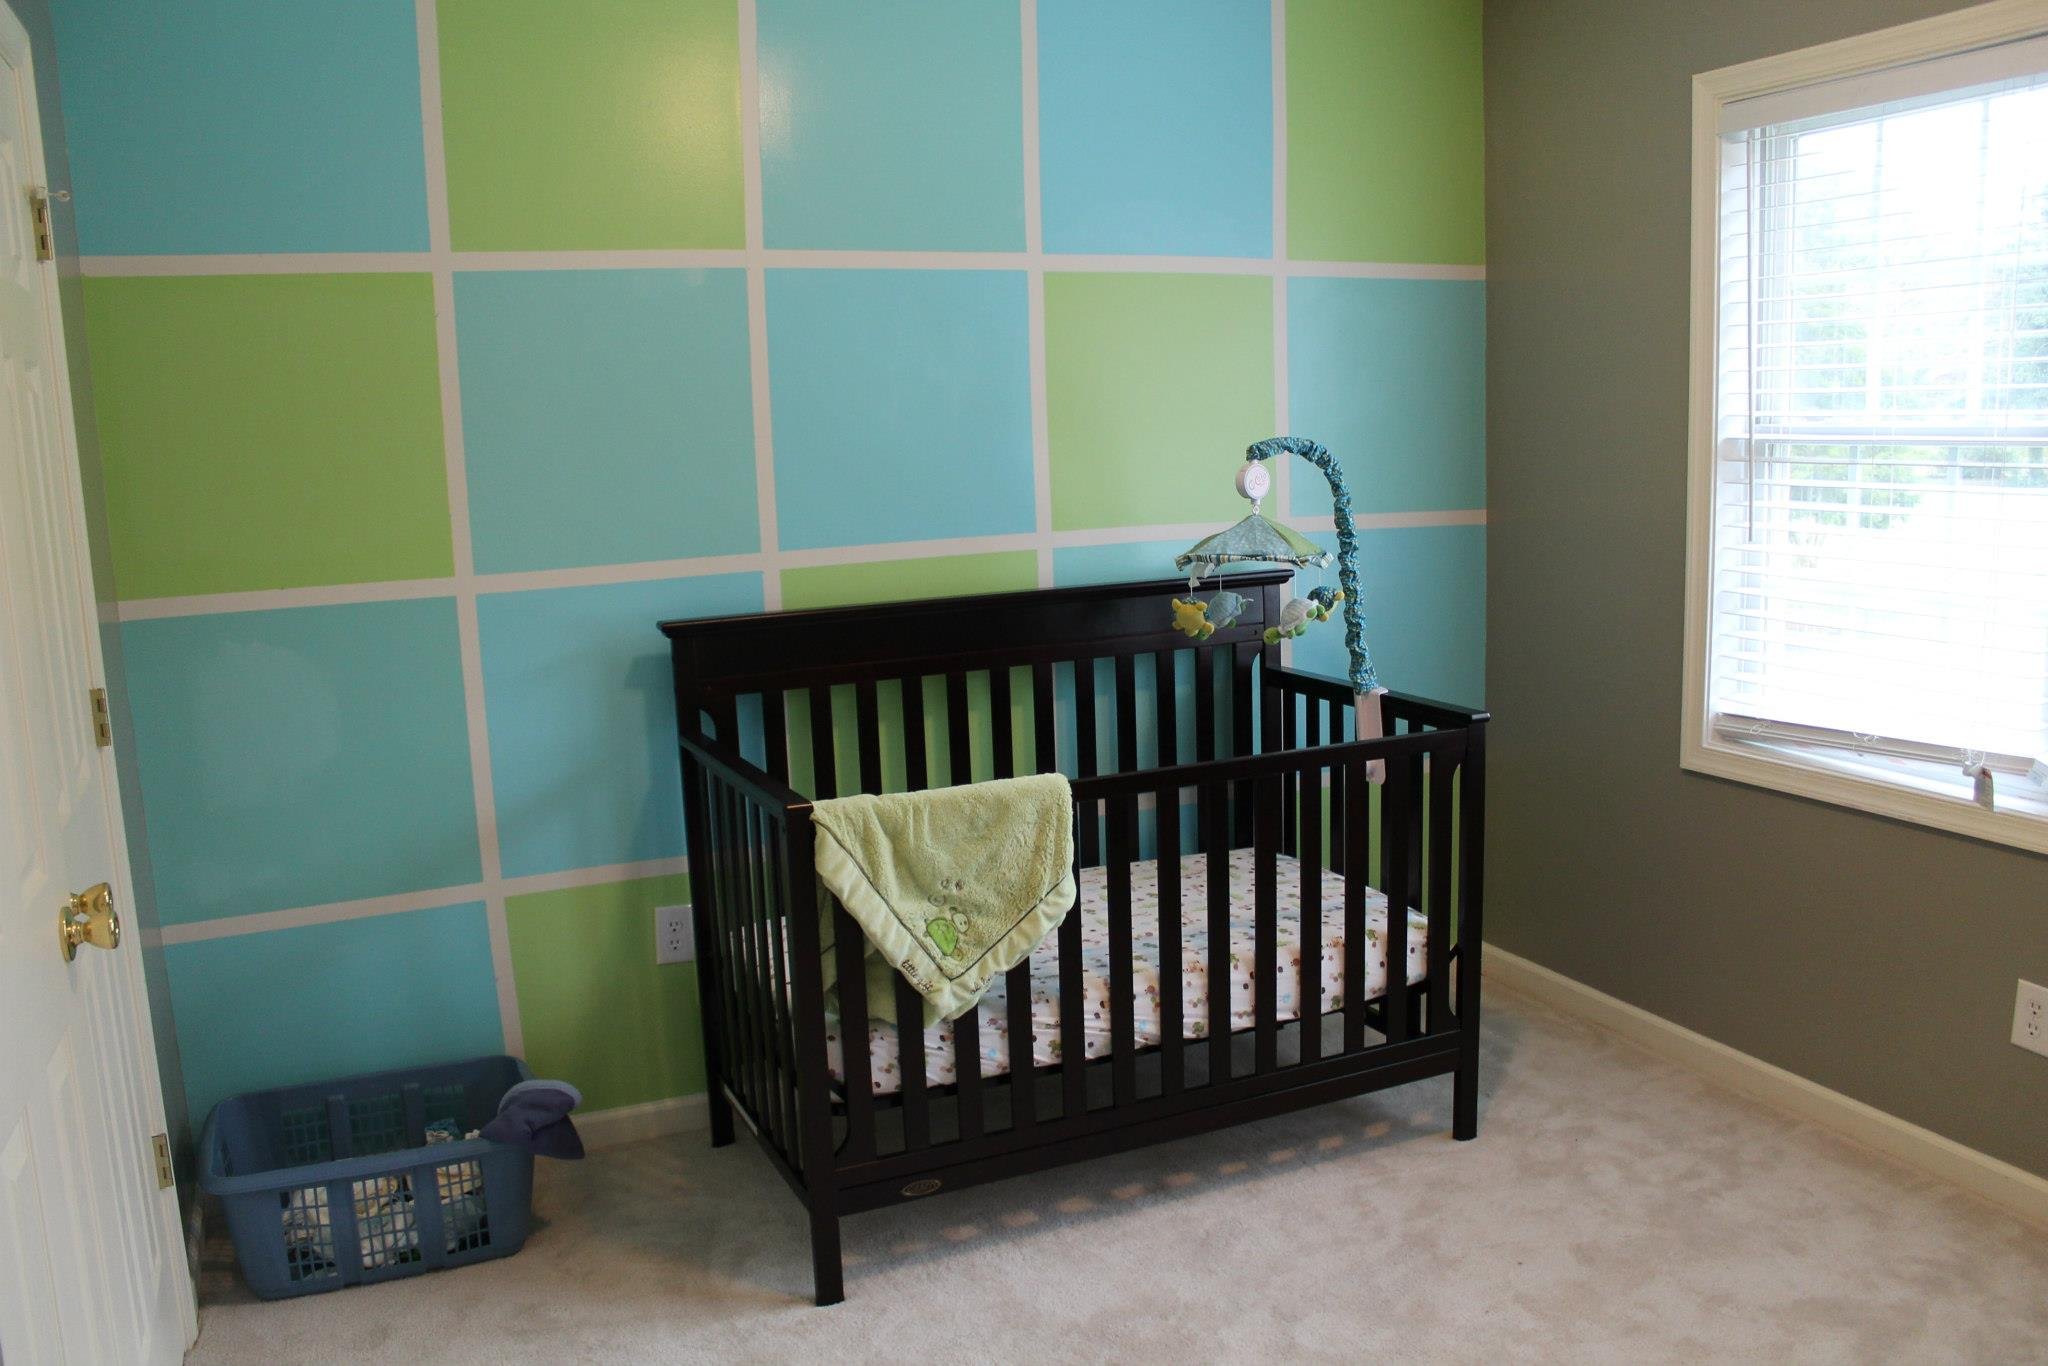 Green and Blue color block nursery with brown crib